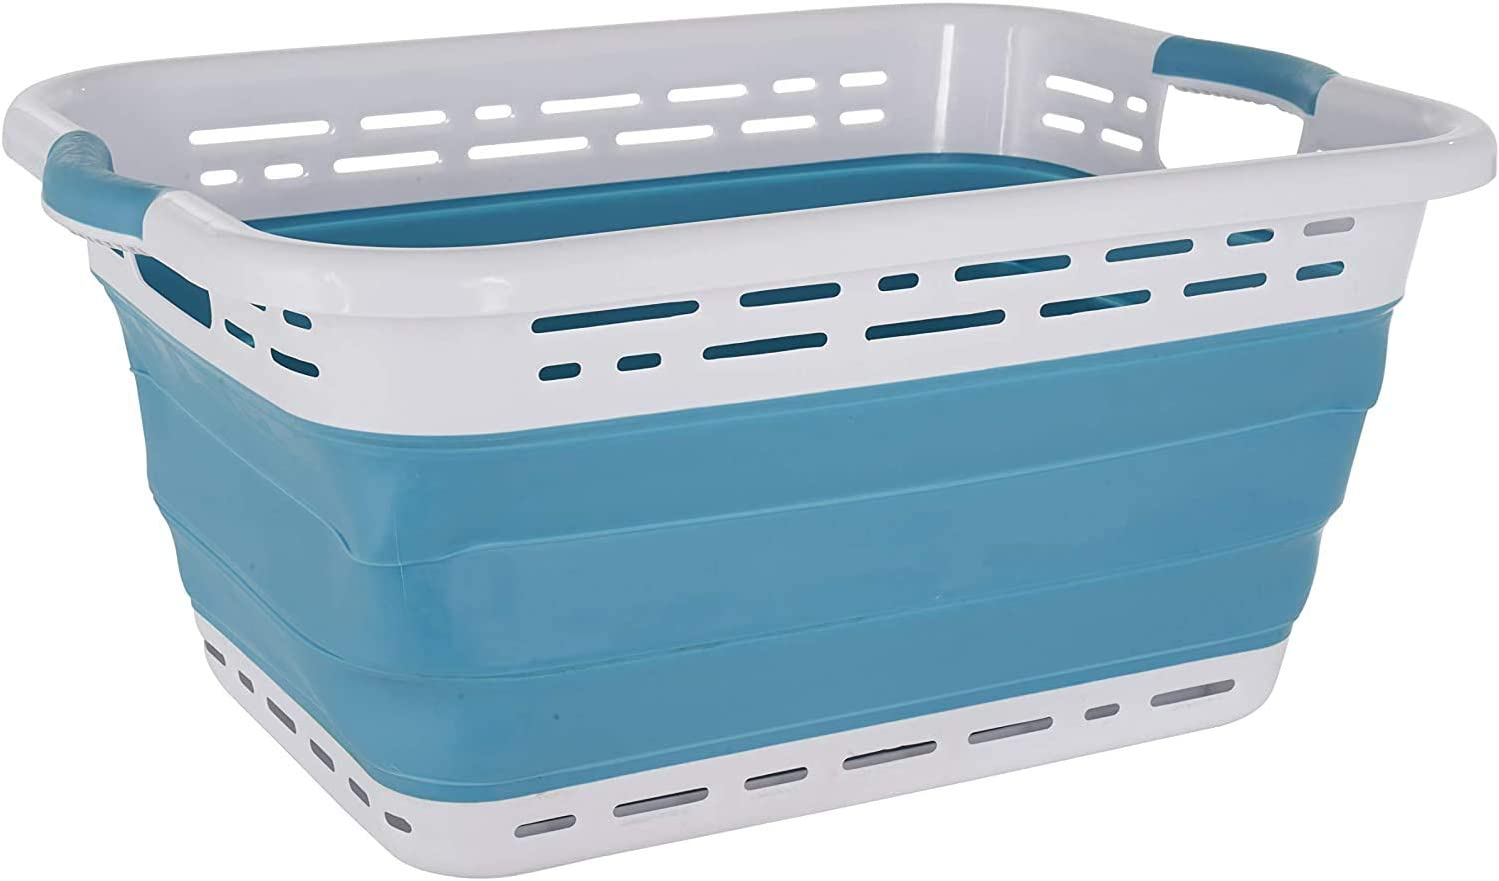 Black +Decker Collapsible Laundry Basket Plastic Storage Container Pop & Load Laundry Basket White & Blue (Pantone 7464C) Rubber